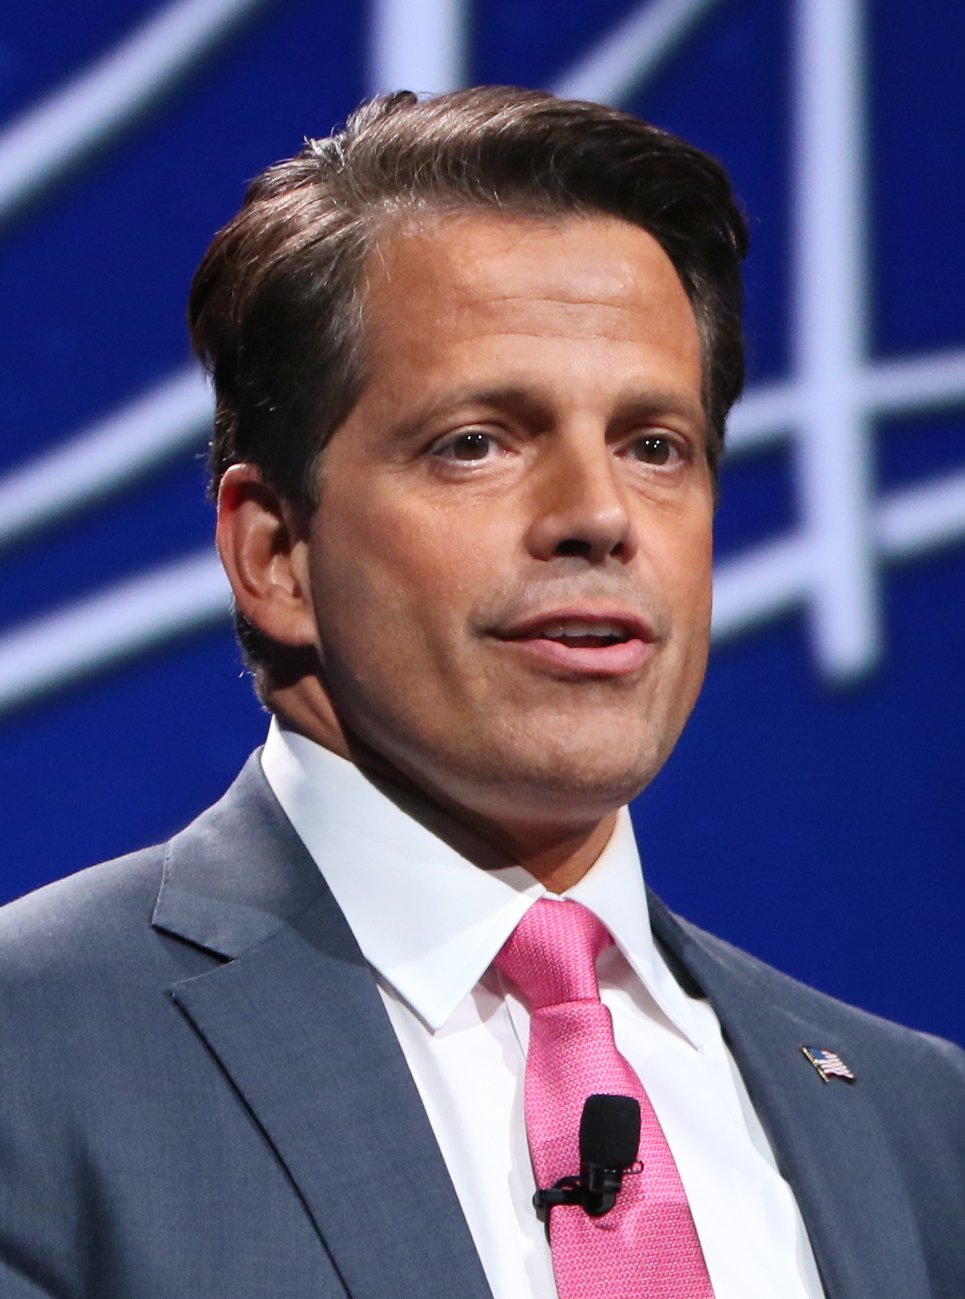 Anthony Scaramucci Speaker